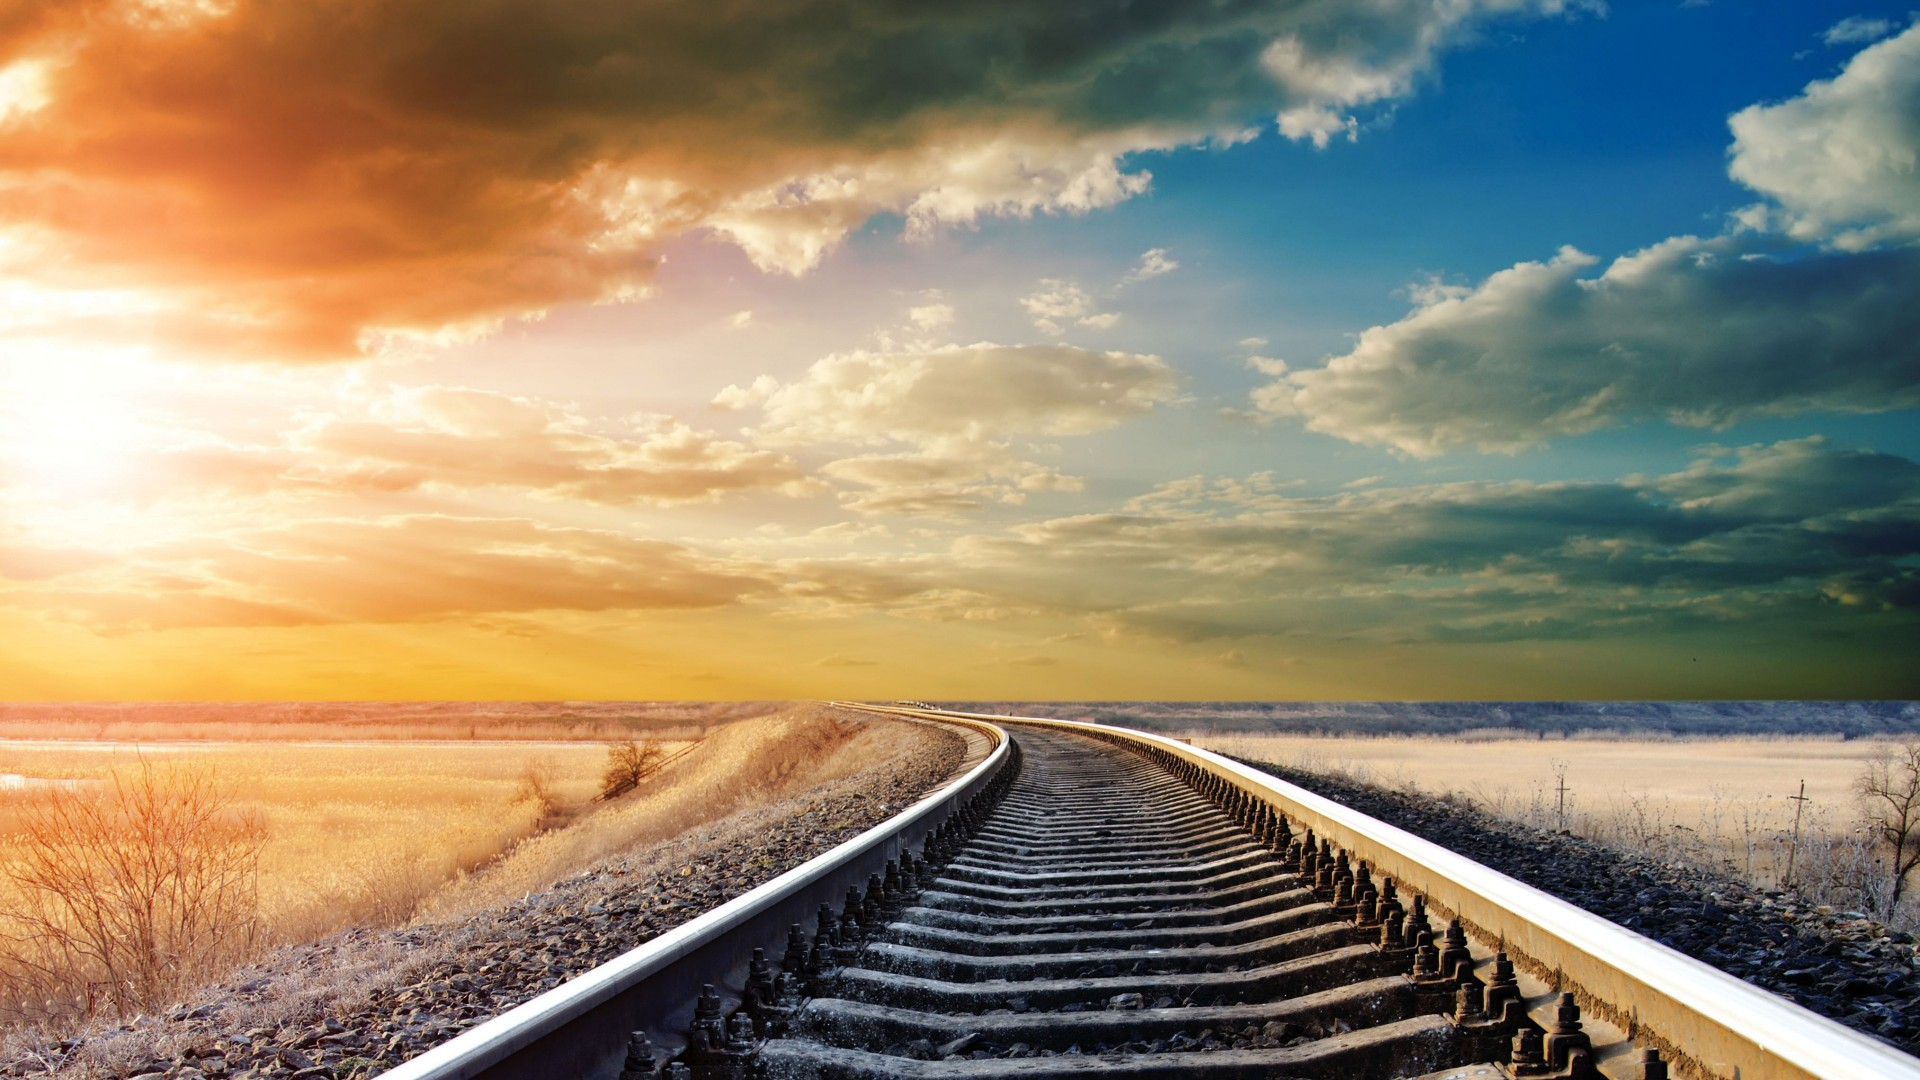 Railway, 4k, HD wallpaper, road, sky, clouds, day, sun, winter, dream,  (horizontal)